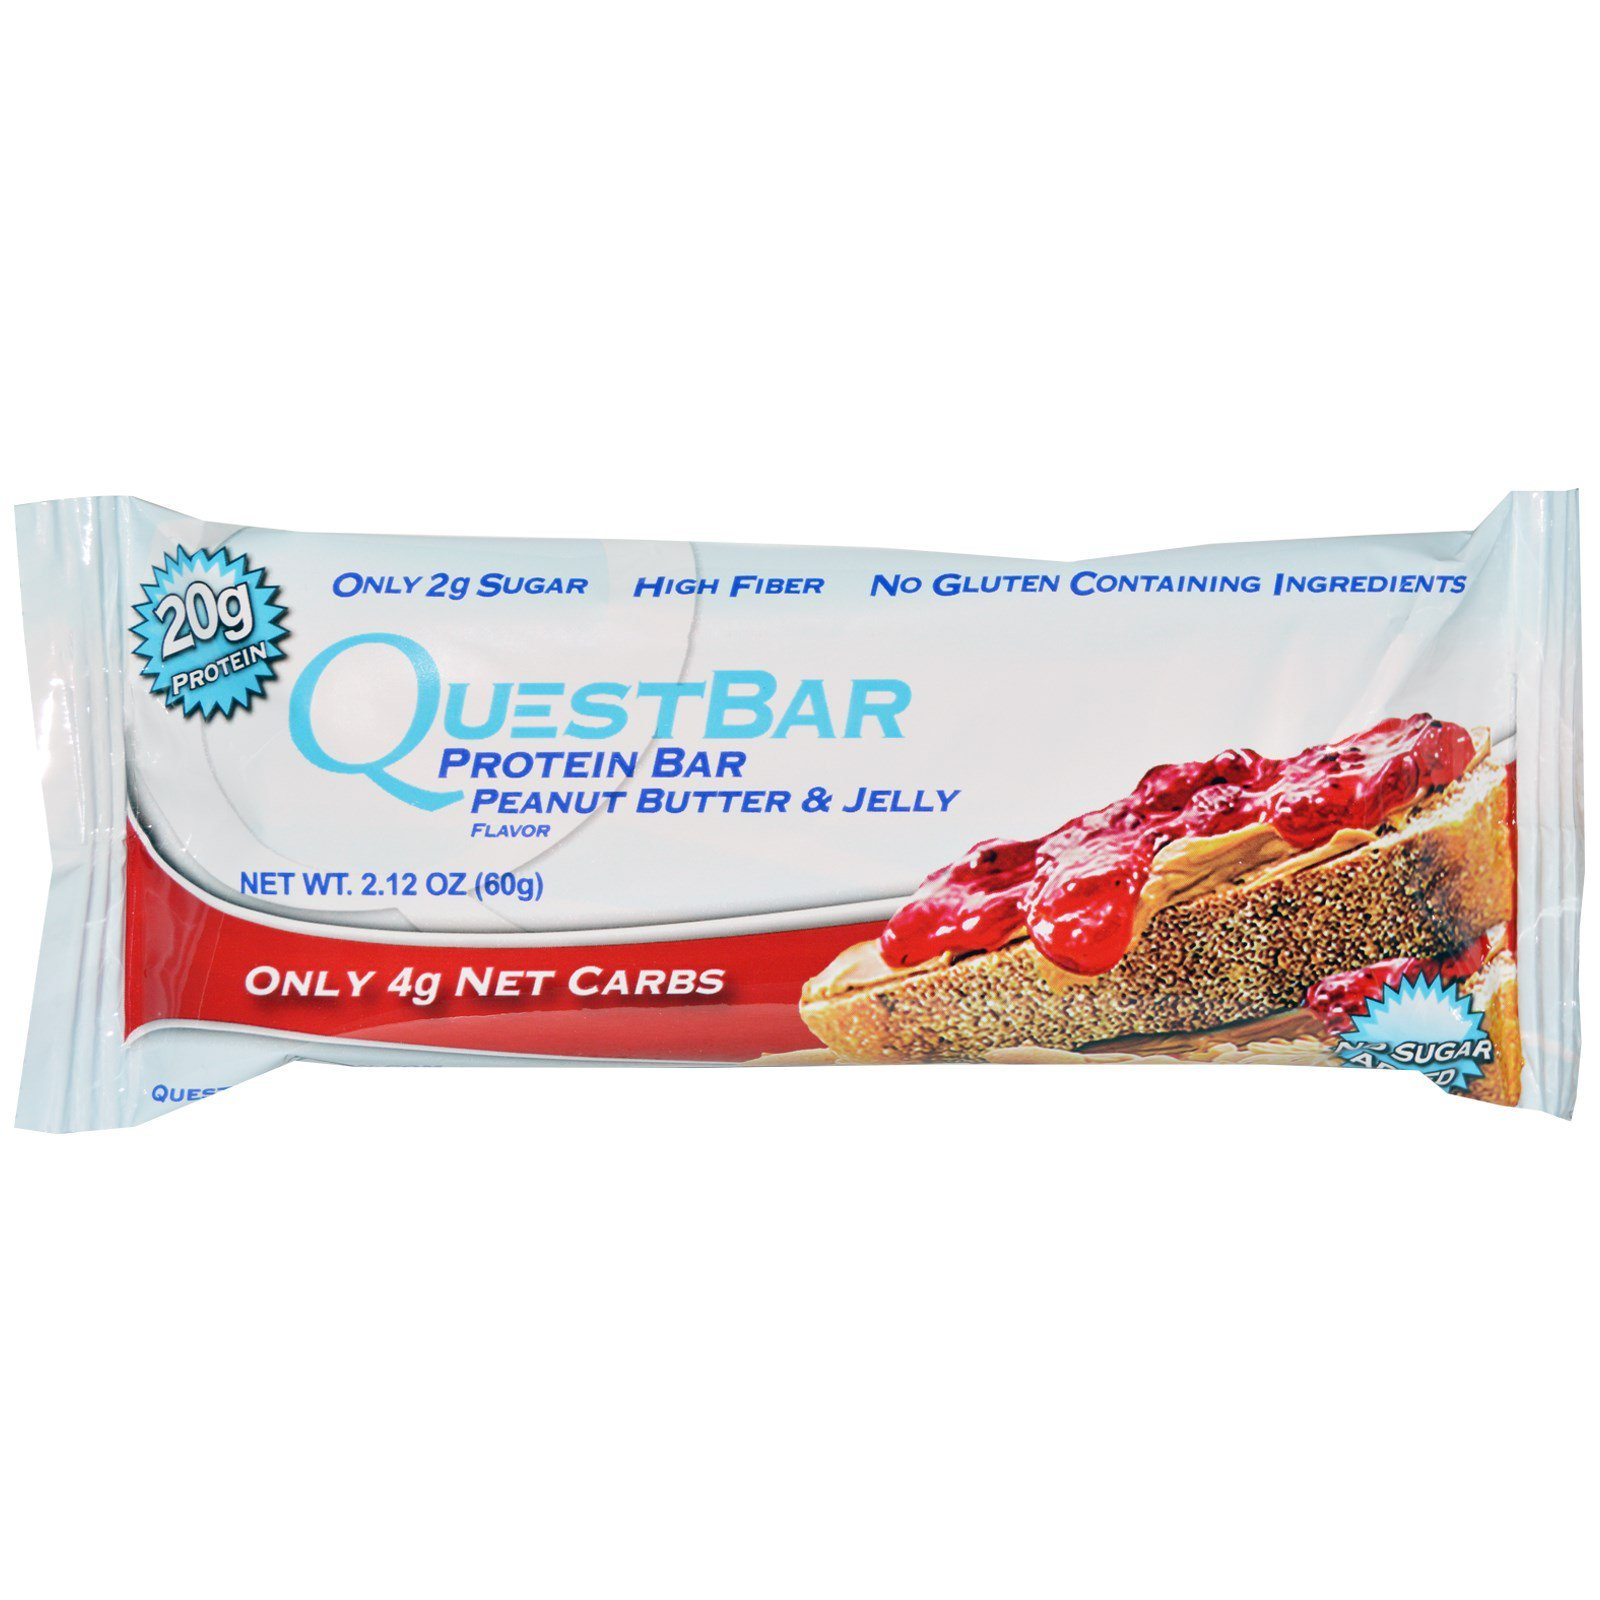 Quest Nutrition, Protein Bar, Peanut Butter and Jelly, 12 Bars, 2.12 oz (60 g) Each (Discontinued Item)